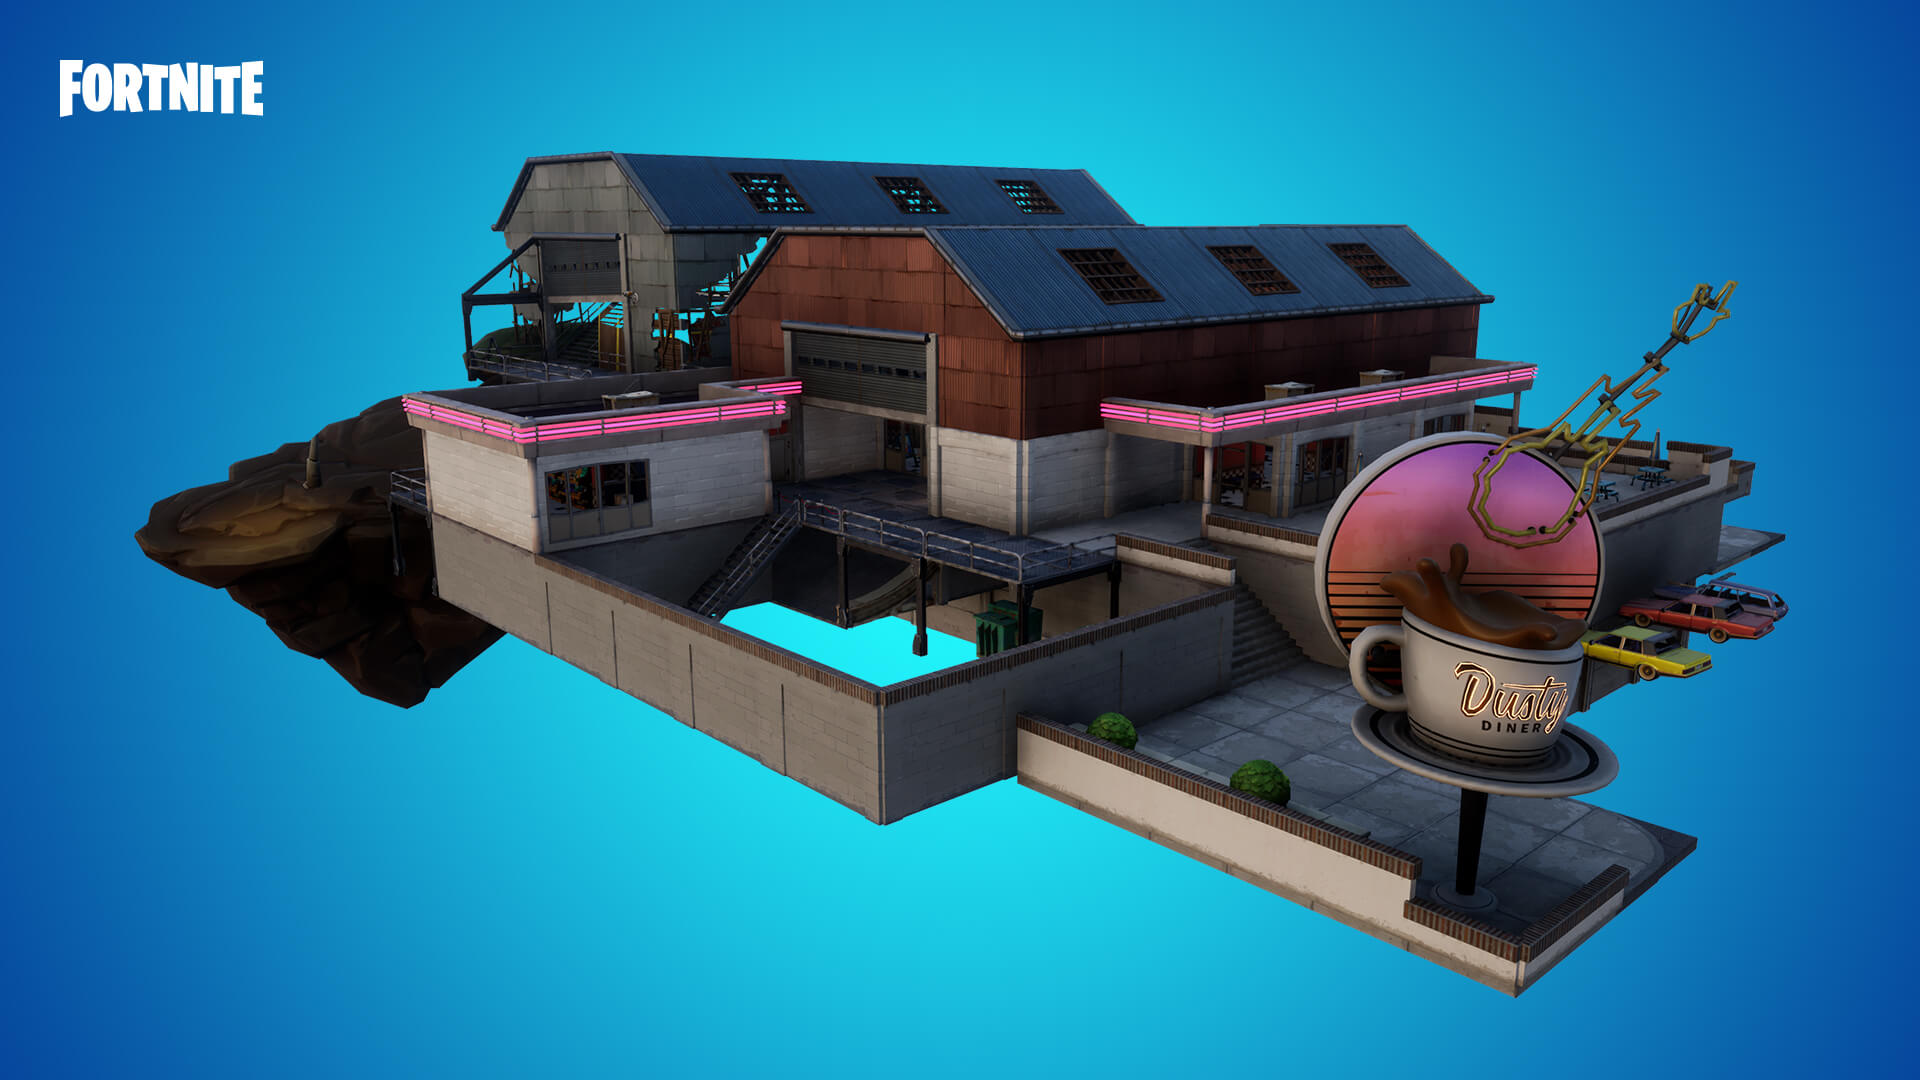 Fortnite%2Fpatch notes%2Fv10 10 content update%2Fcreative header v10 10 content update%2FCreativeDustyPrefabs DustyDiner 1920x1080 1920x1080 0b04477e951a7e6e4396e2bd932d18c1d432e306 - Обновление контента версия 10.10 для фортнайт